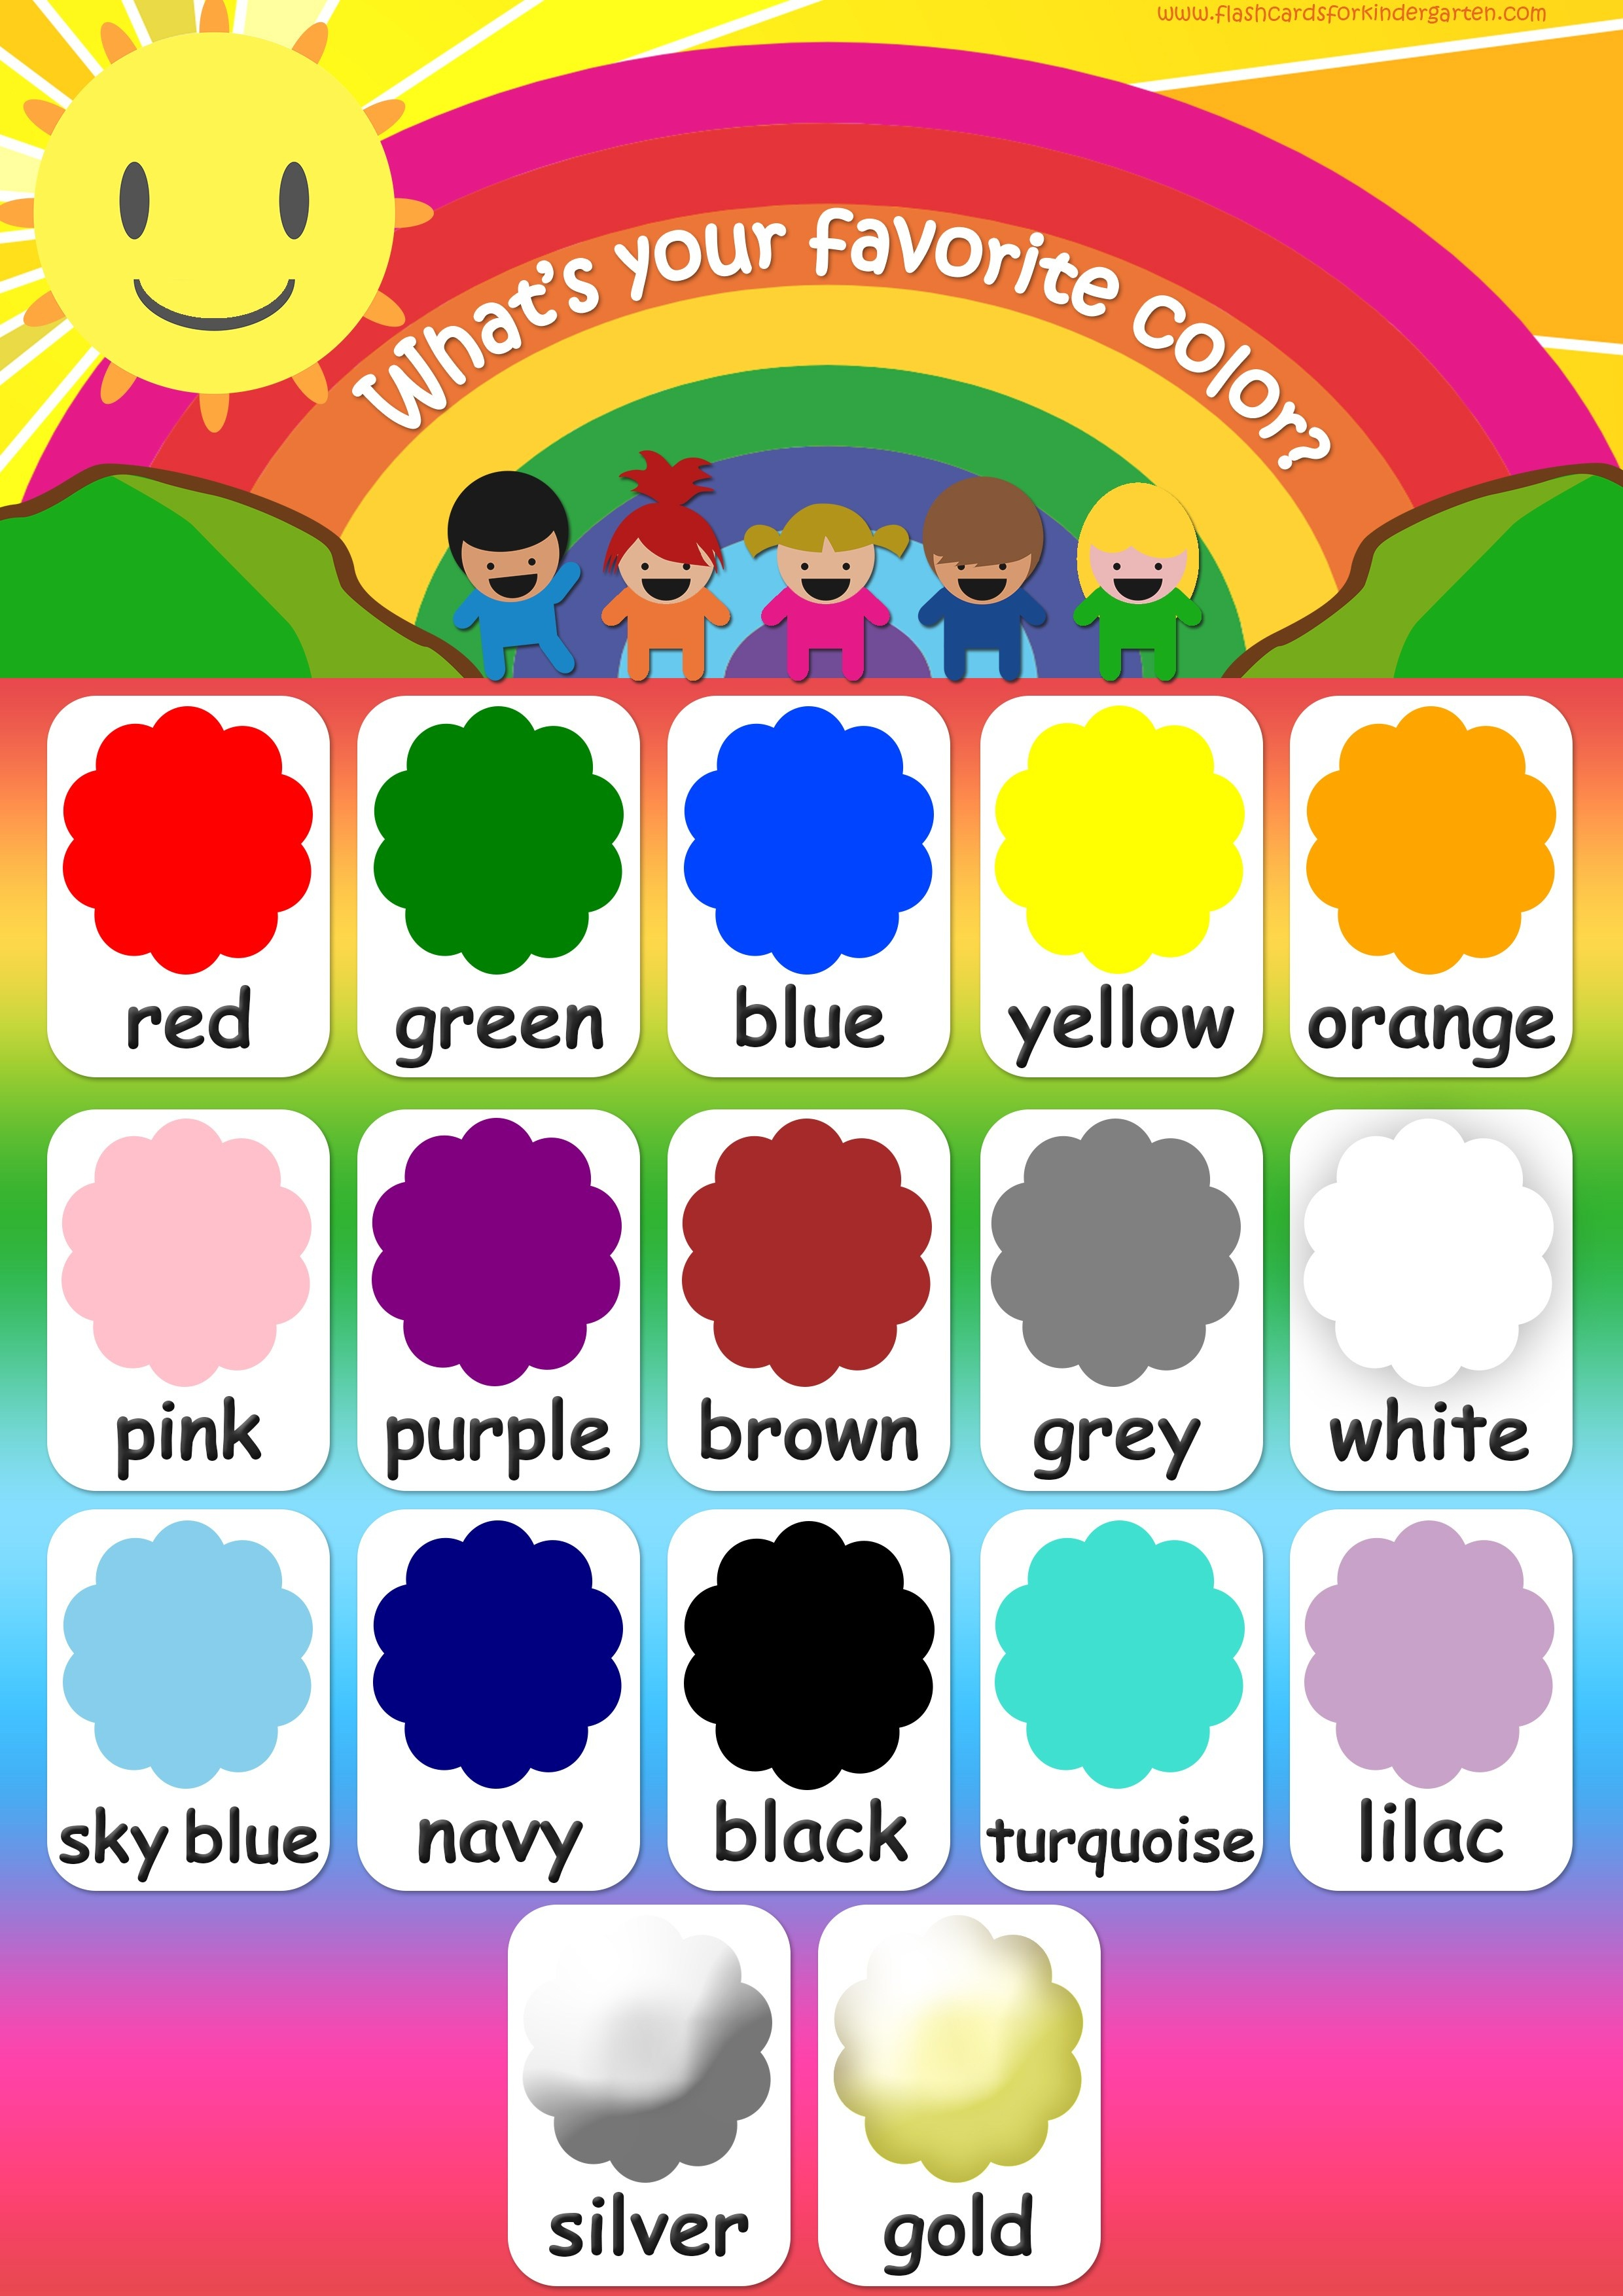 Color Flashcards - Teach Colors - Free Printable Flashcards & Posters! - Color Flashcards Printable Free